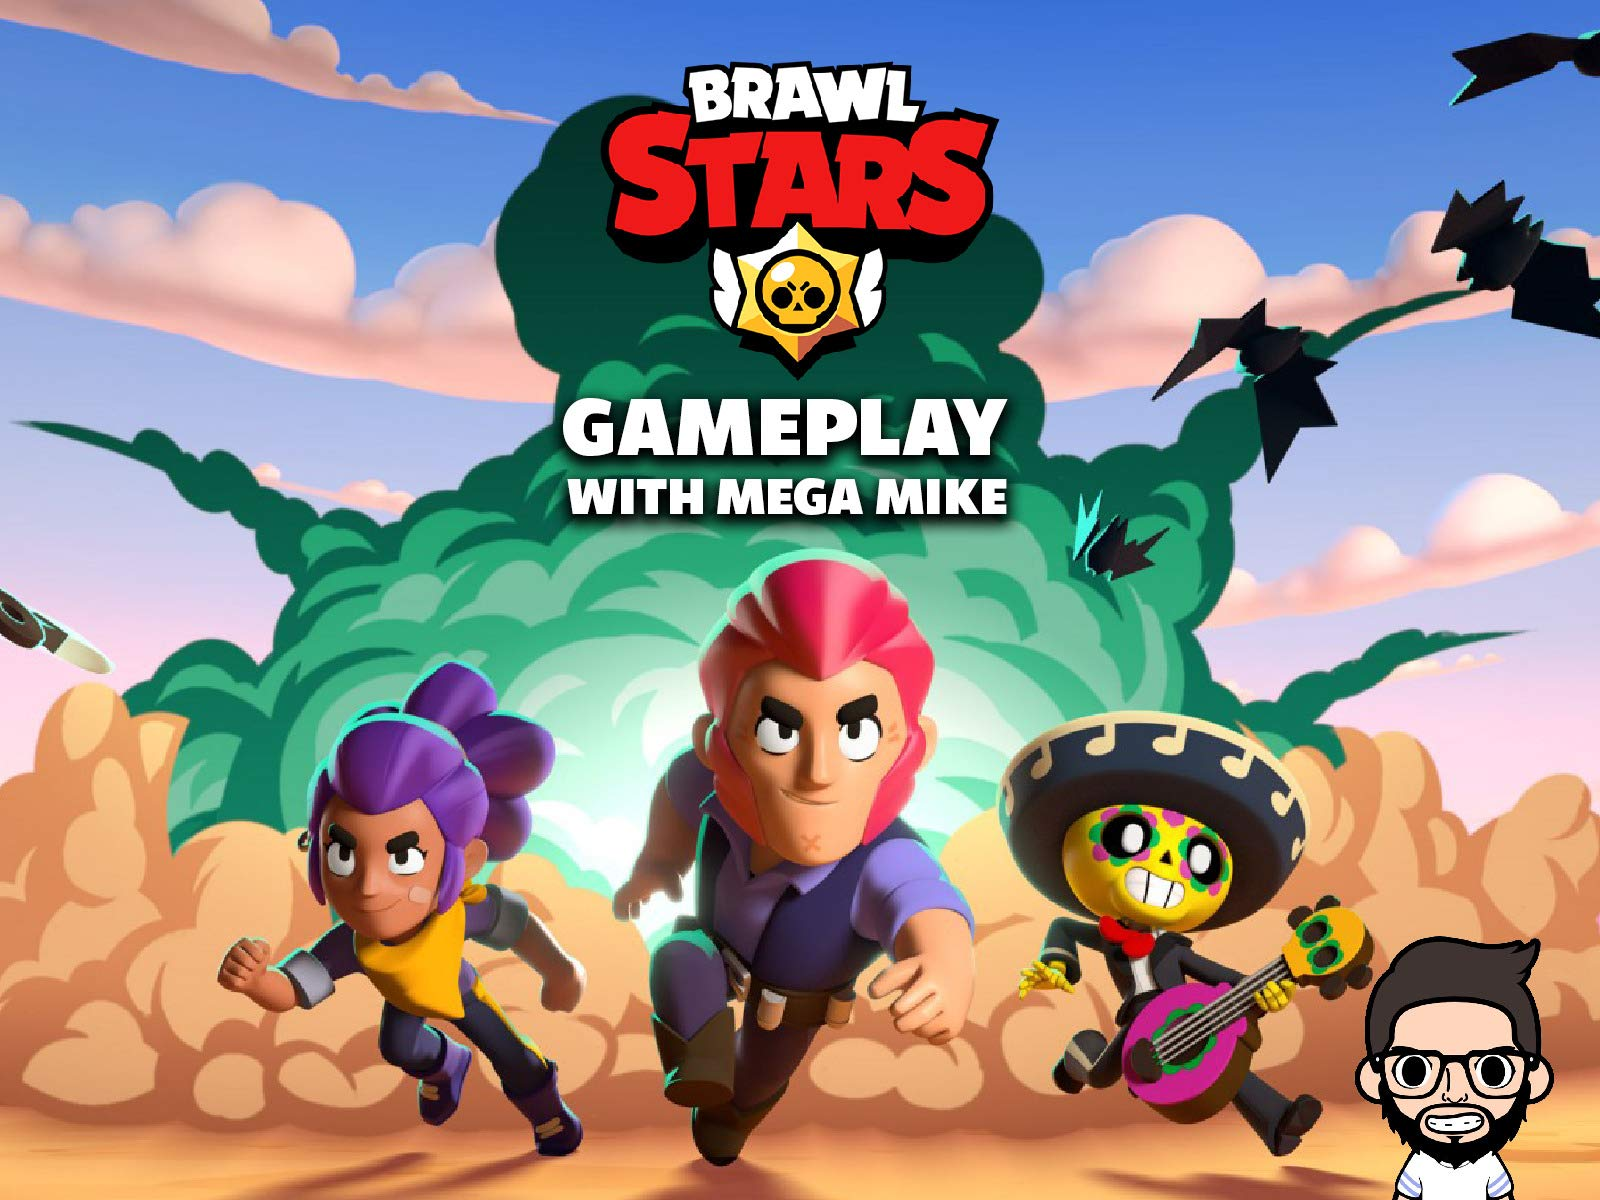 Brawl Stars Gameplay With Mega Mike on Amazon Prime Instant Video UK